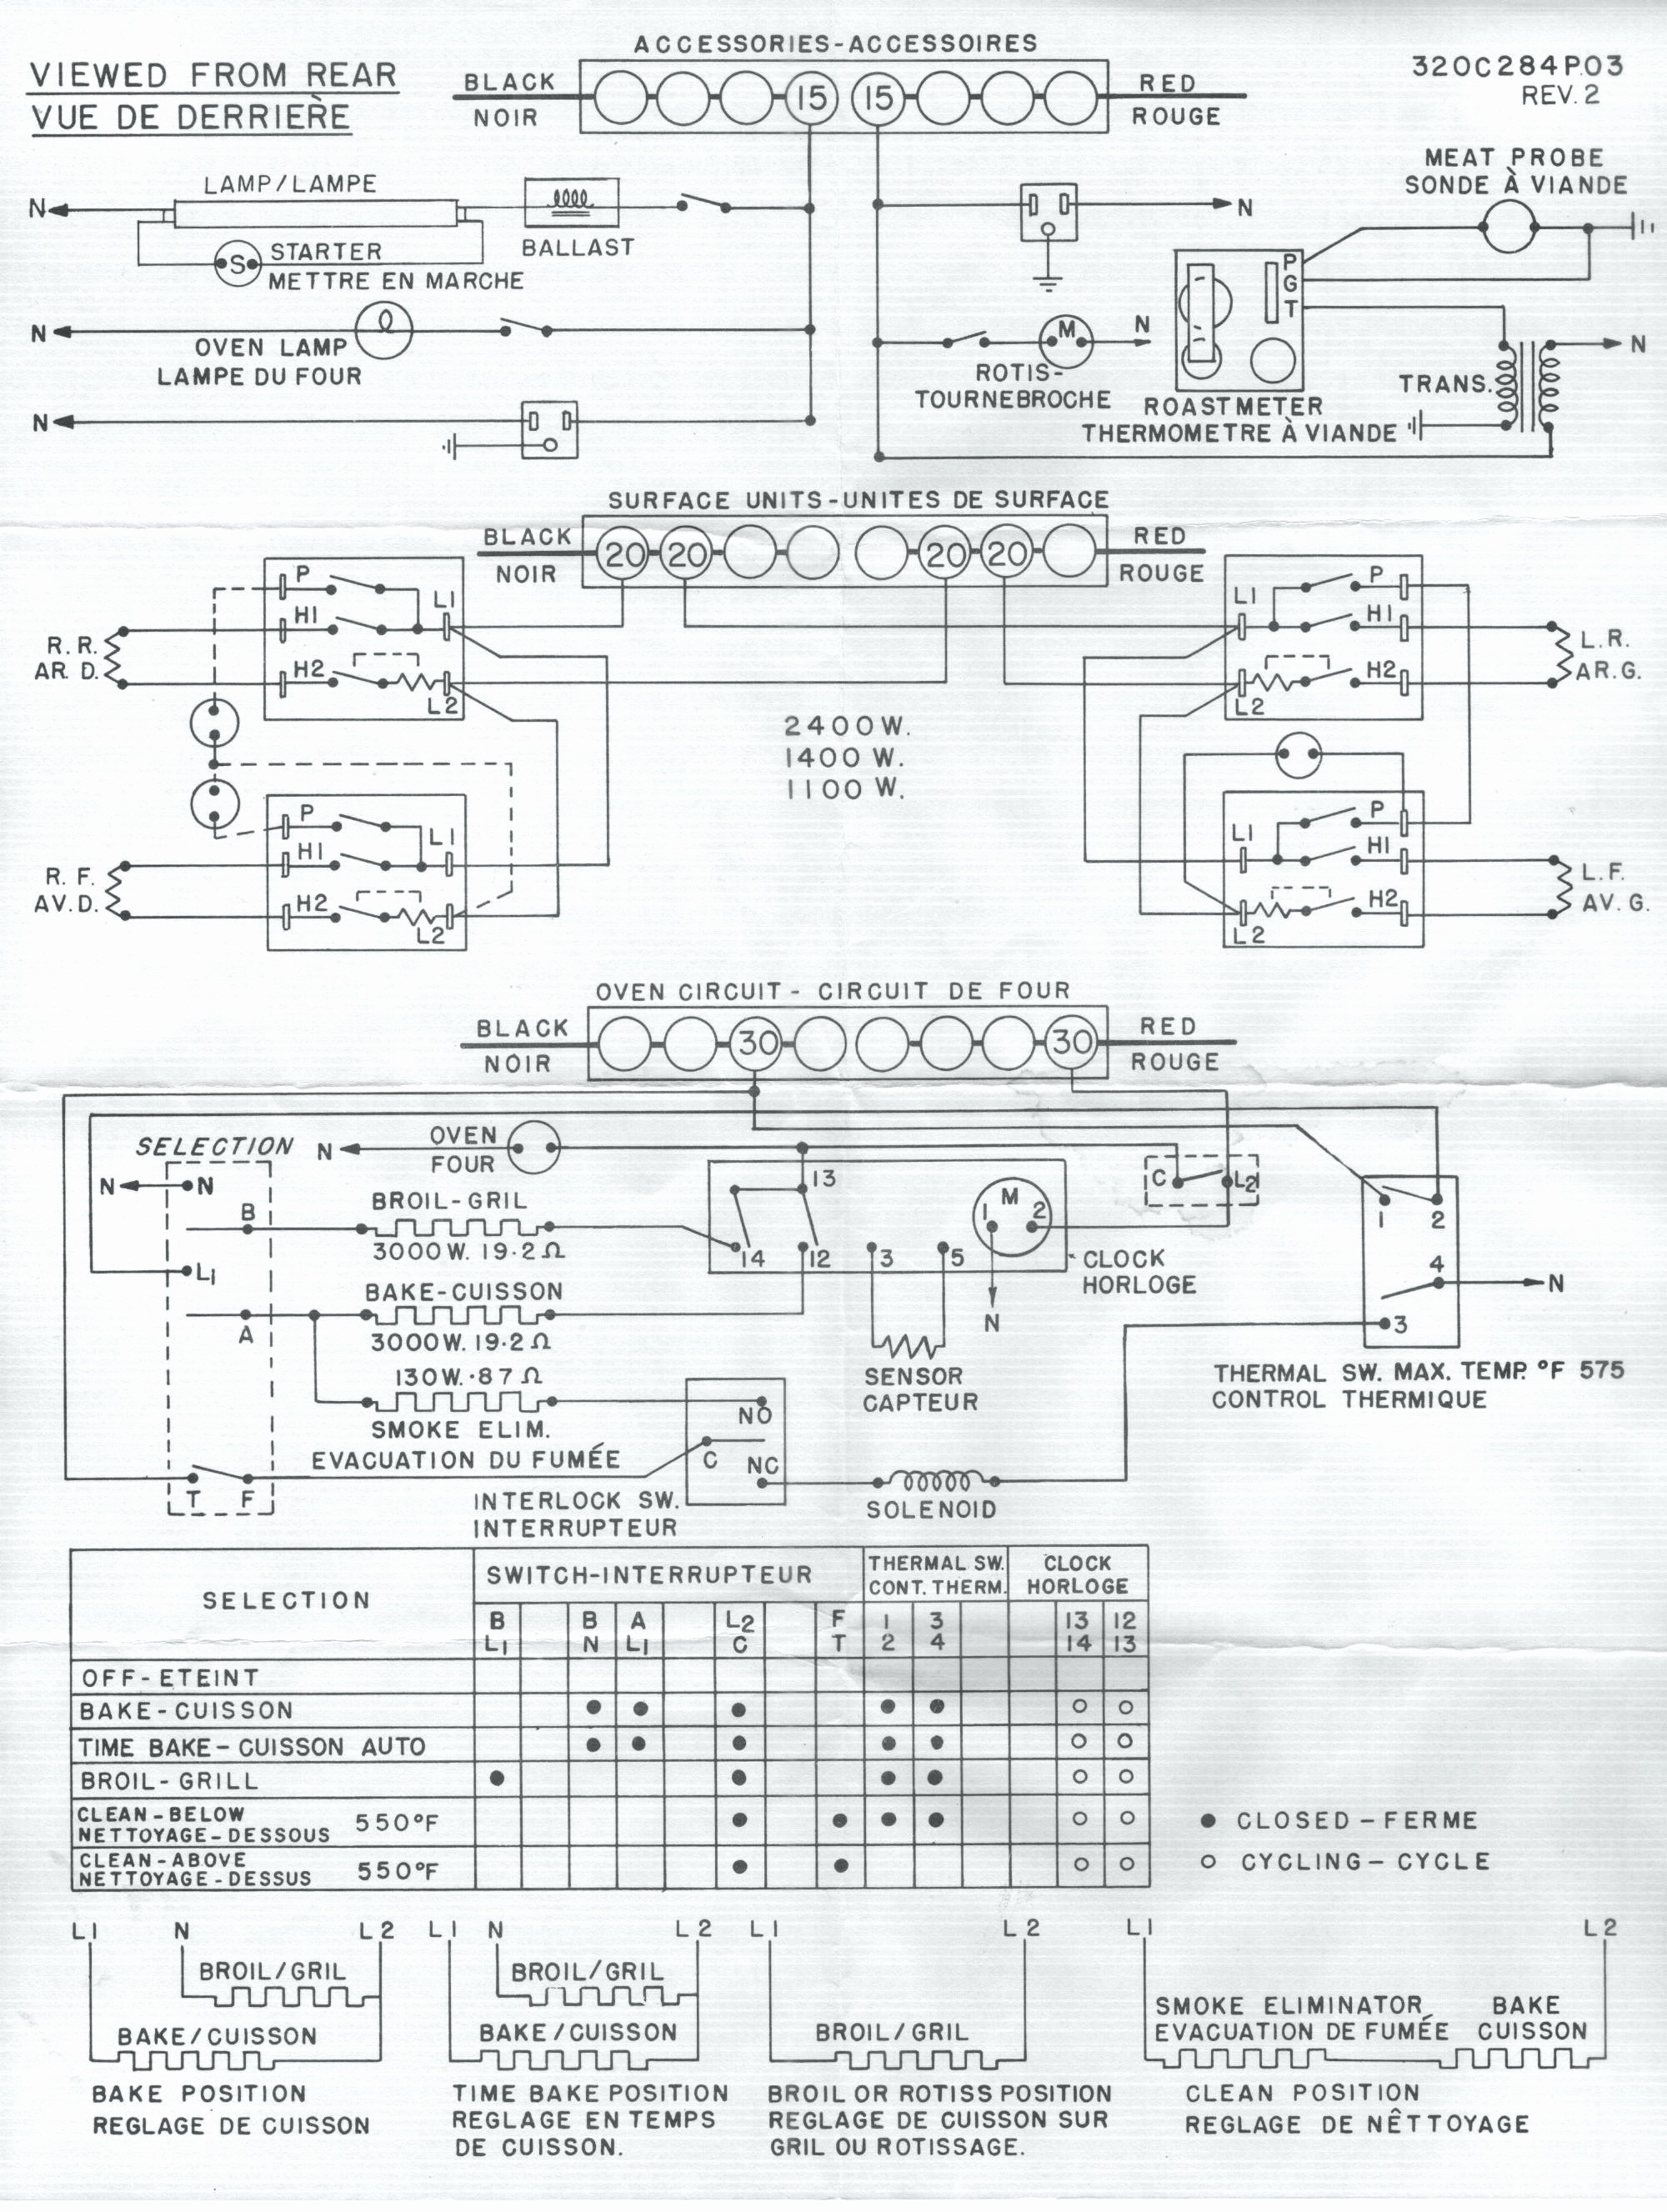 White Rodgers thermostat Wiring Diagram Fantastic White